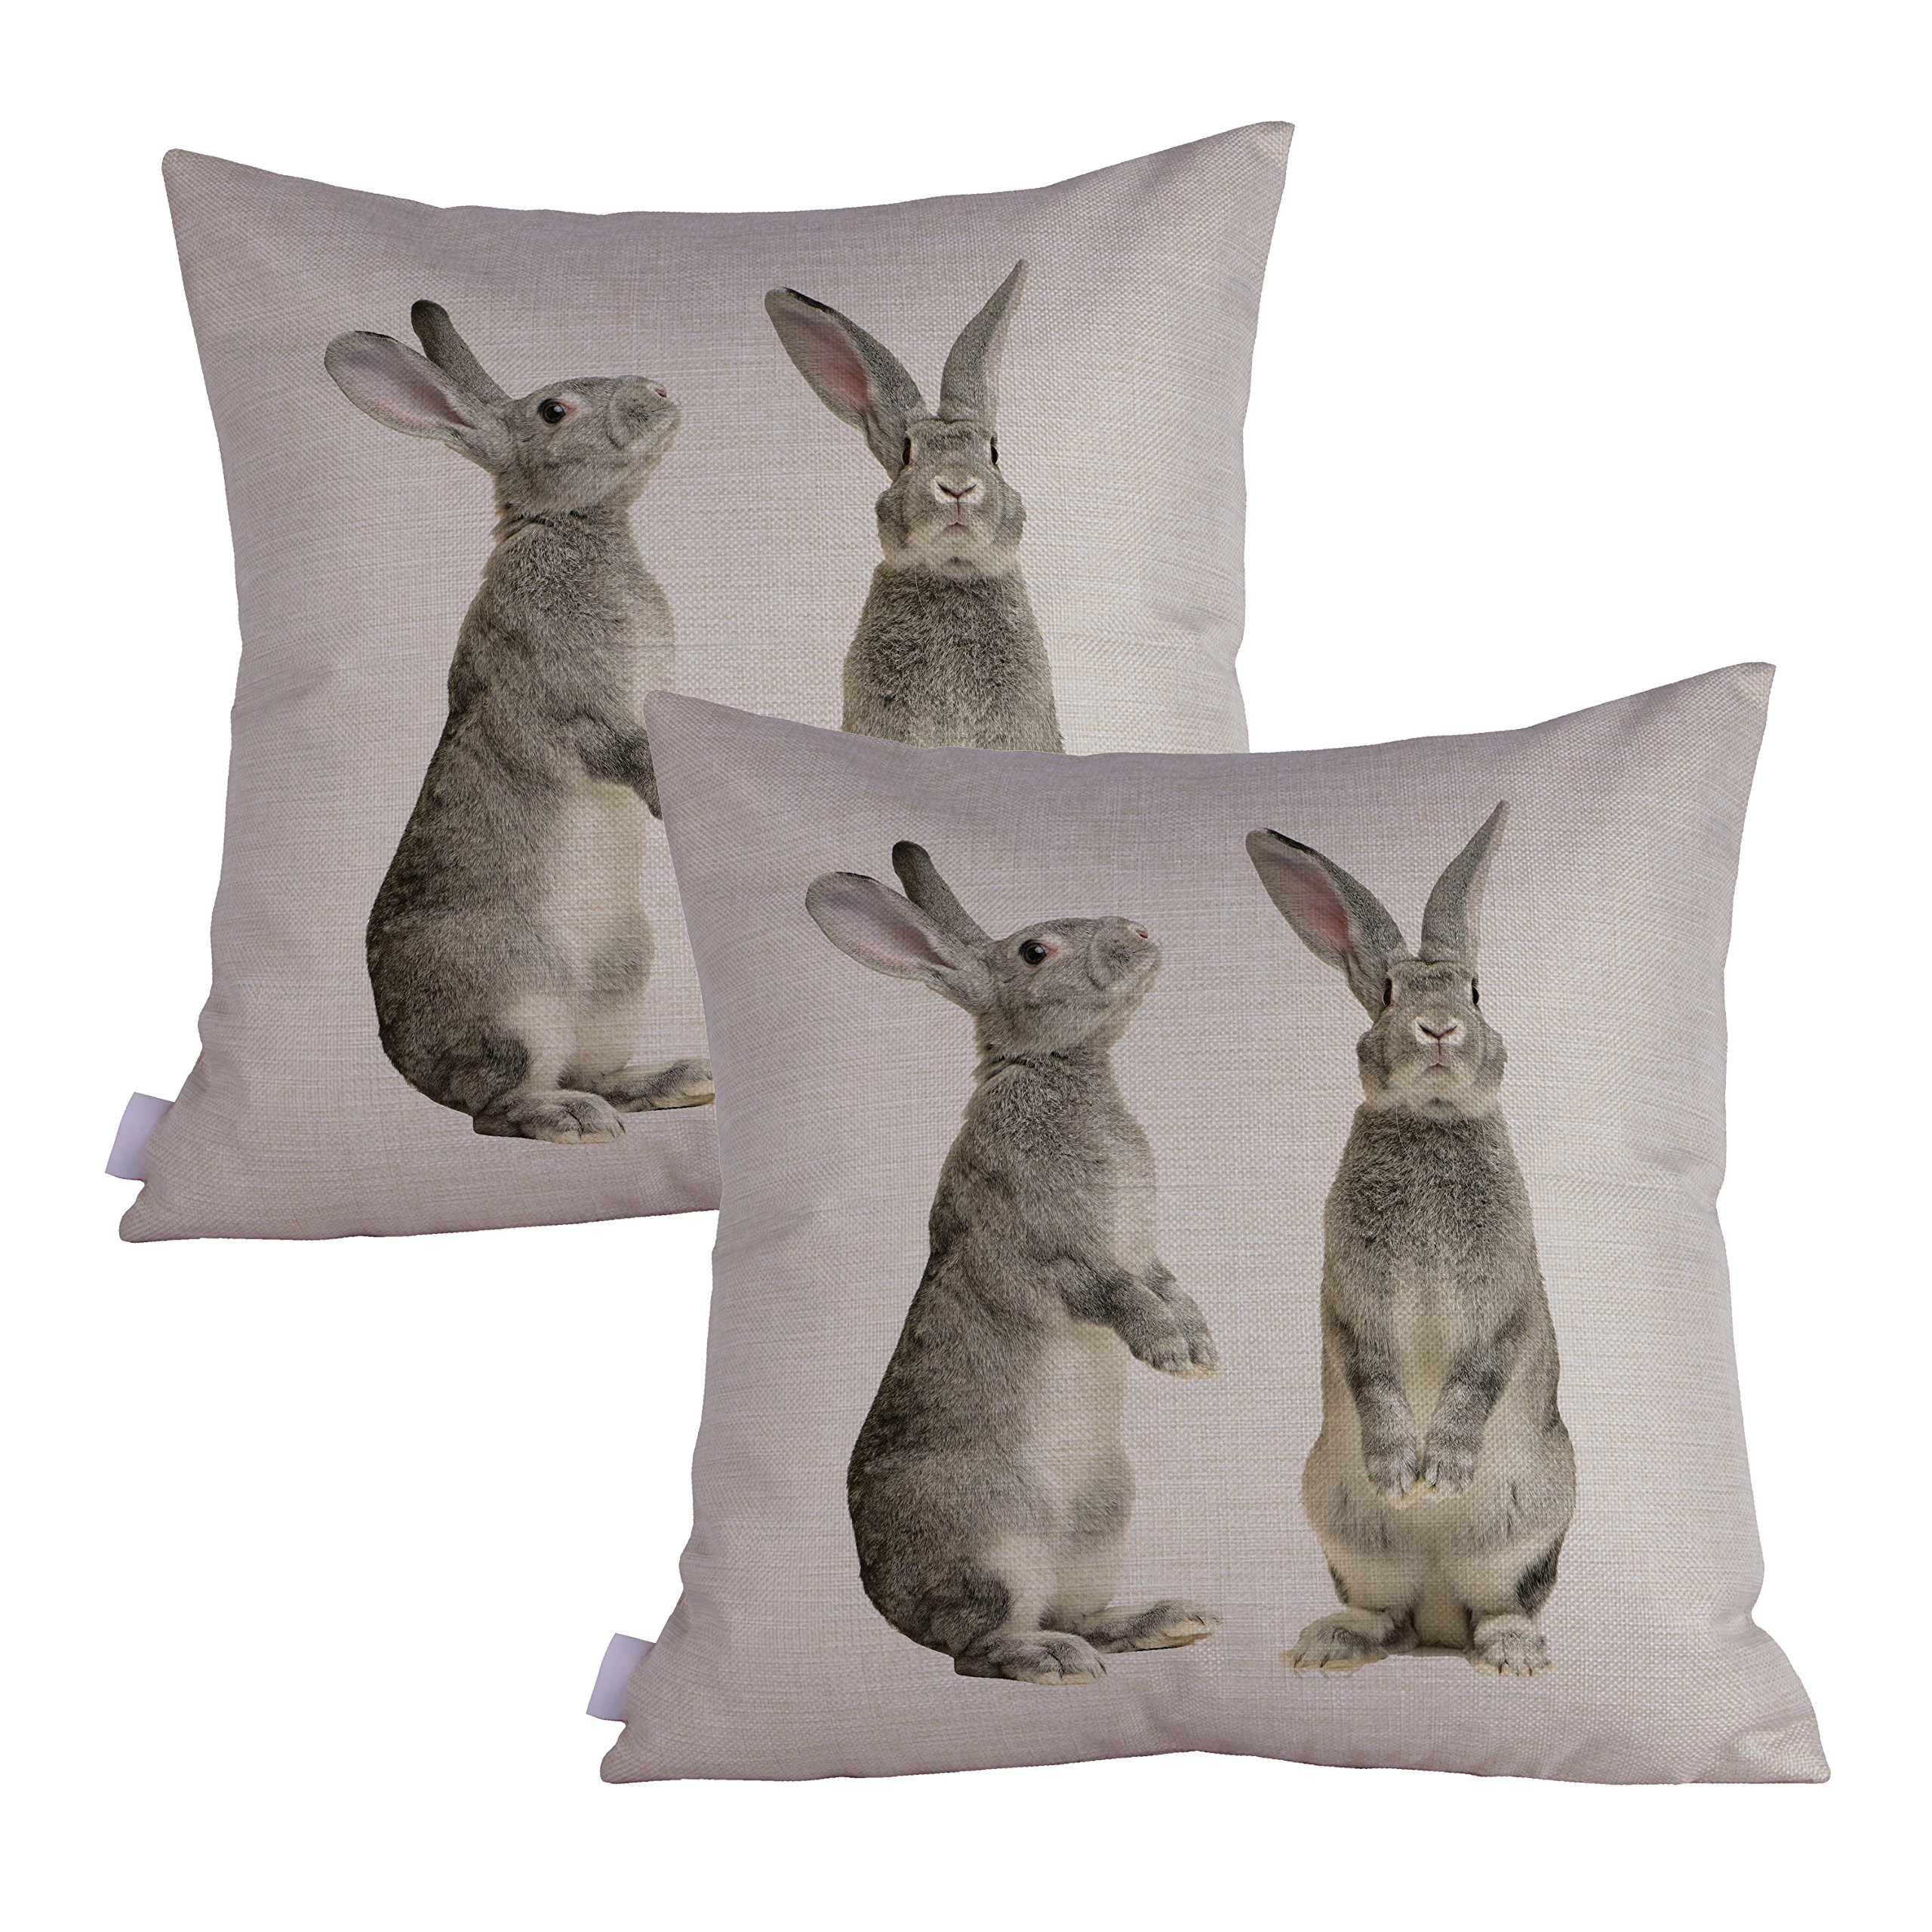 Queenie - 2 Pcs Wild Animals Decorative Pillowcase Cushion Cover for Sofa Throw Pillow Case 18 X 18 Inch 45 X 45 Cm, Set of 2 (Grey Rabbits)